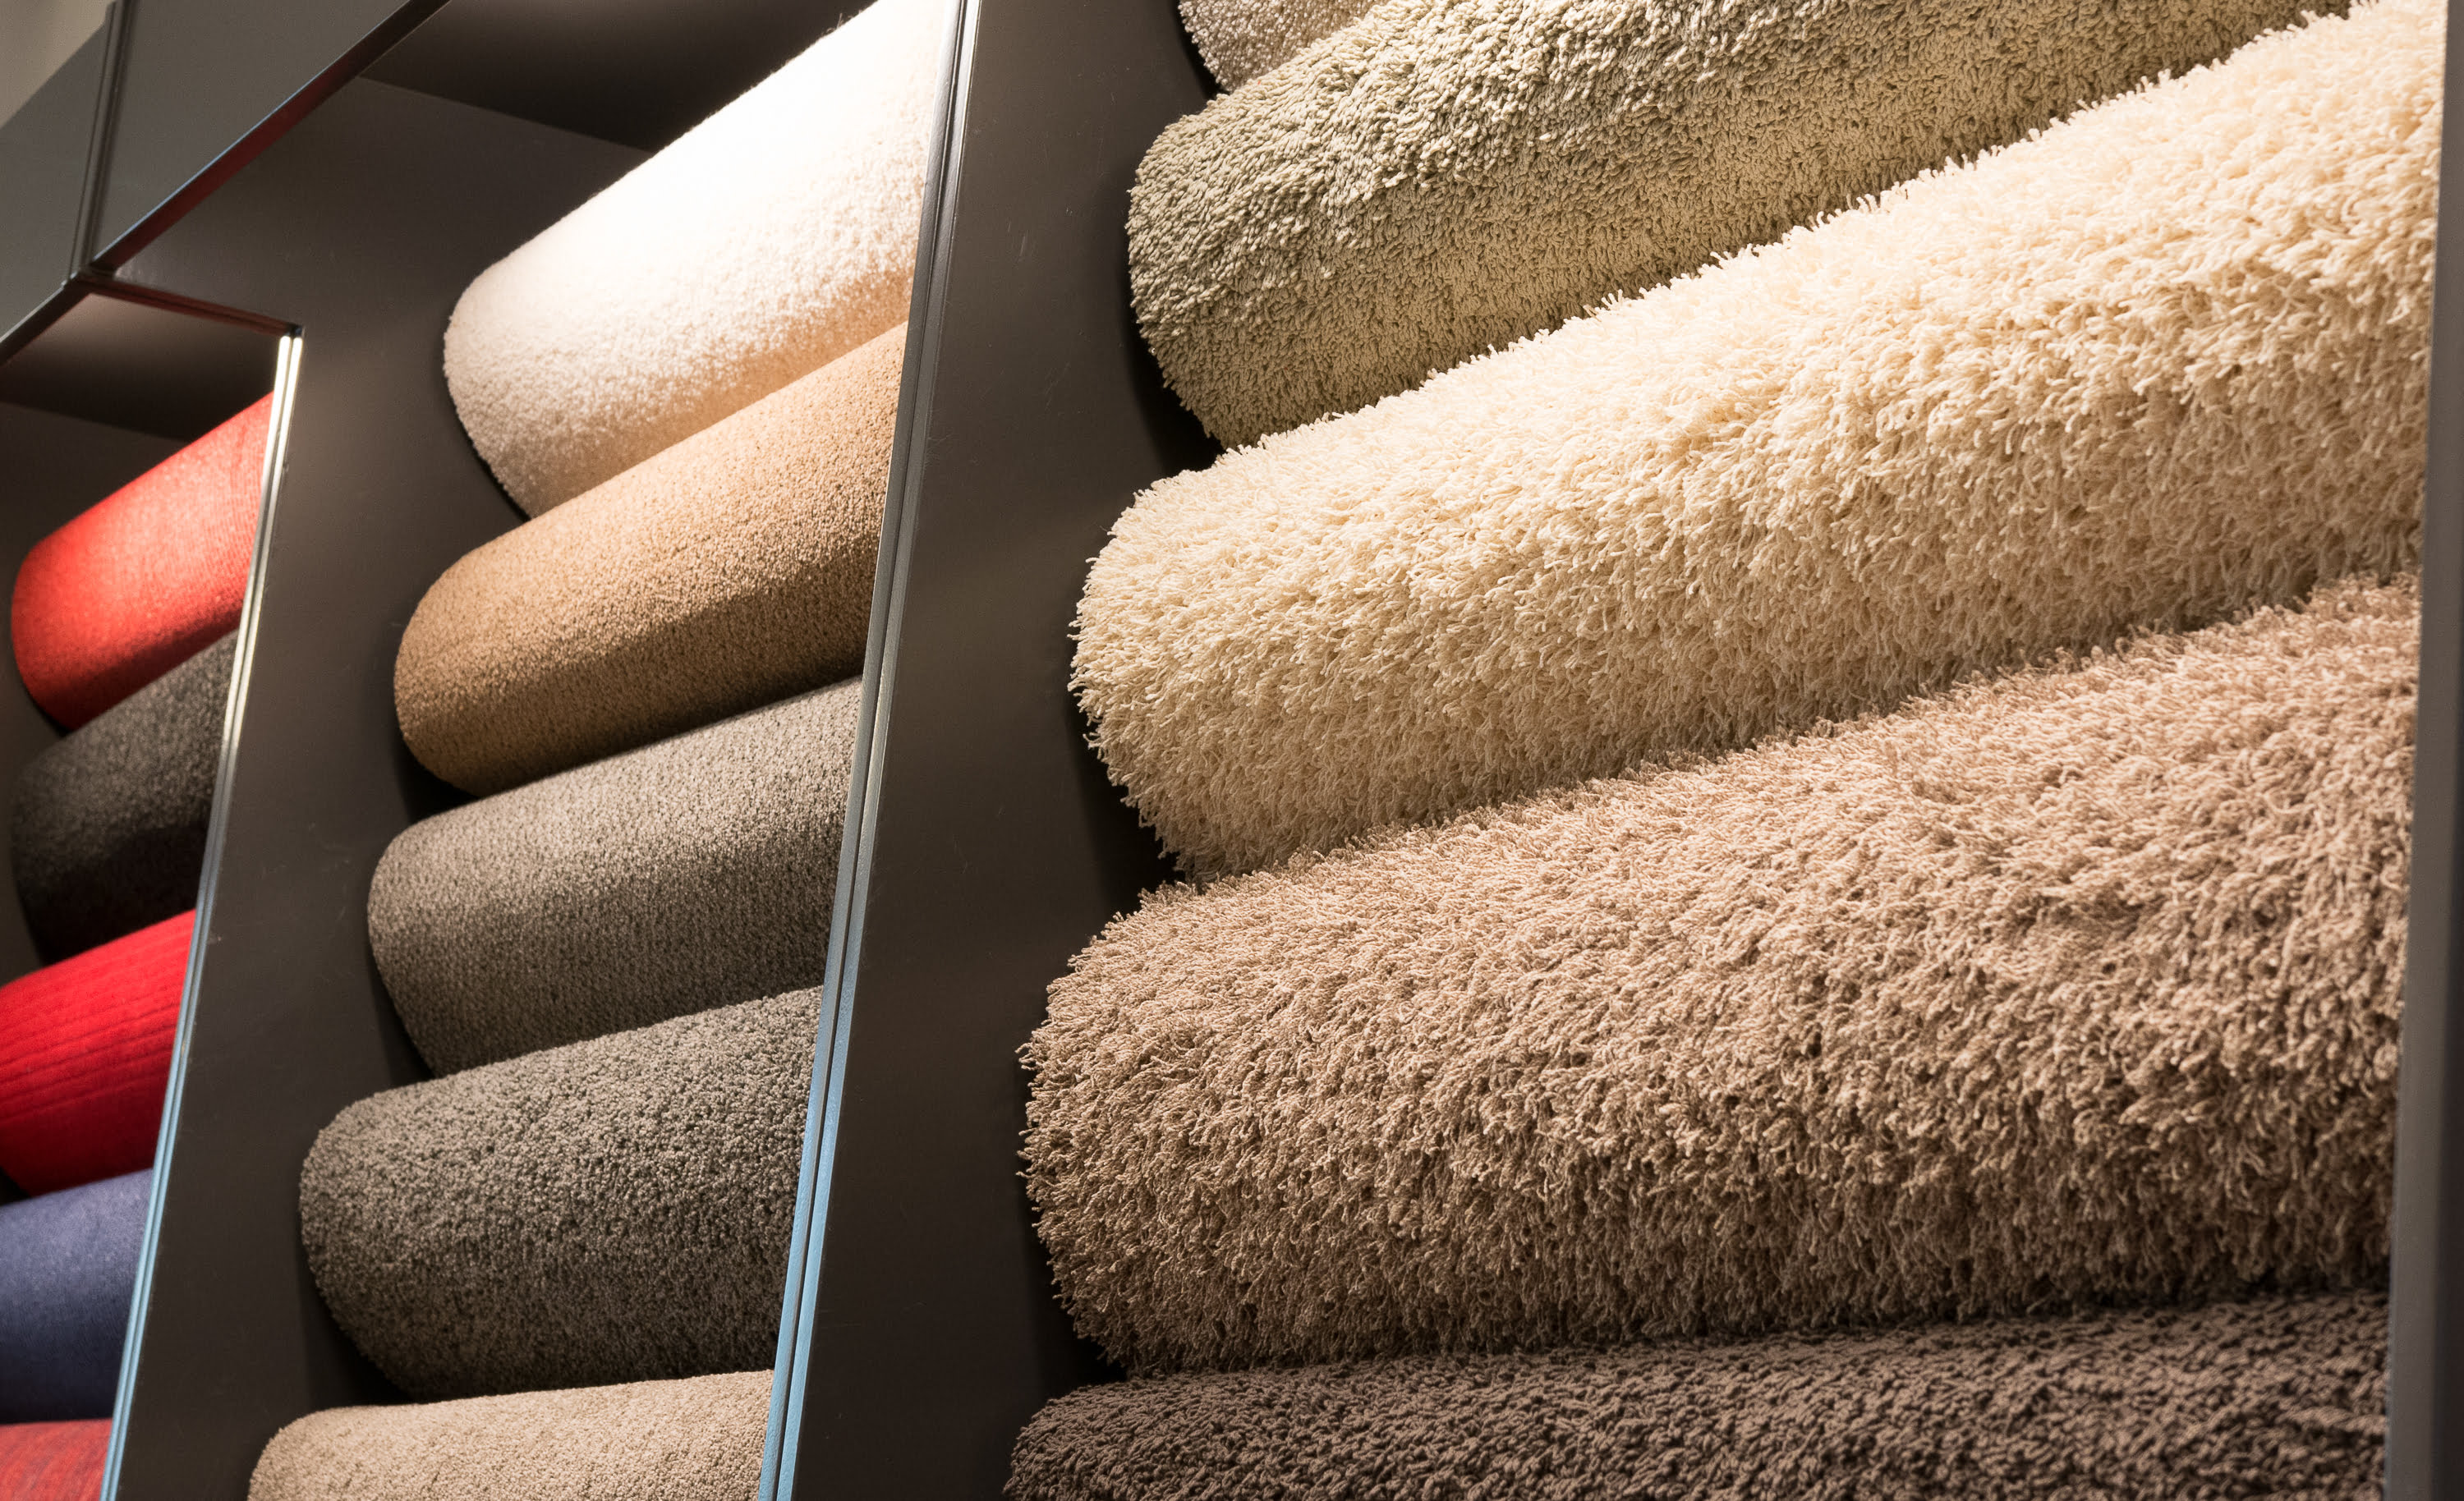 Fifteen swatches of different carpets, colours and piles, K & M Carpets & Interiors, Shaftesbury Mews, Bath, Whiteway, Twerton, Bear Flat, The Oval, Southdown